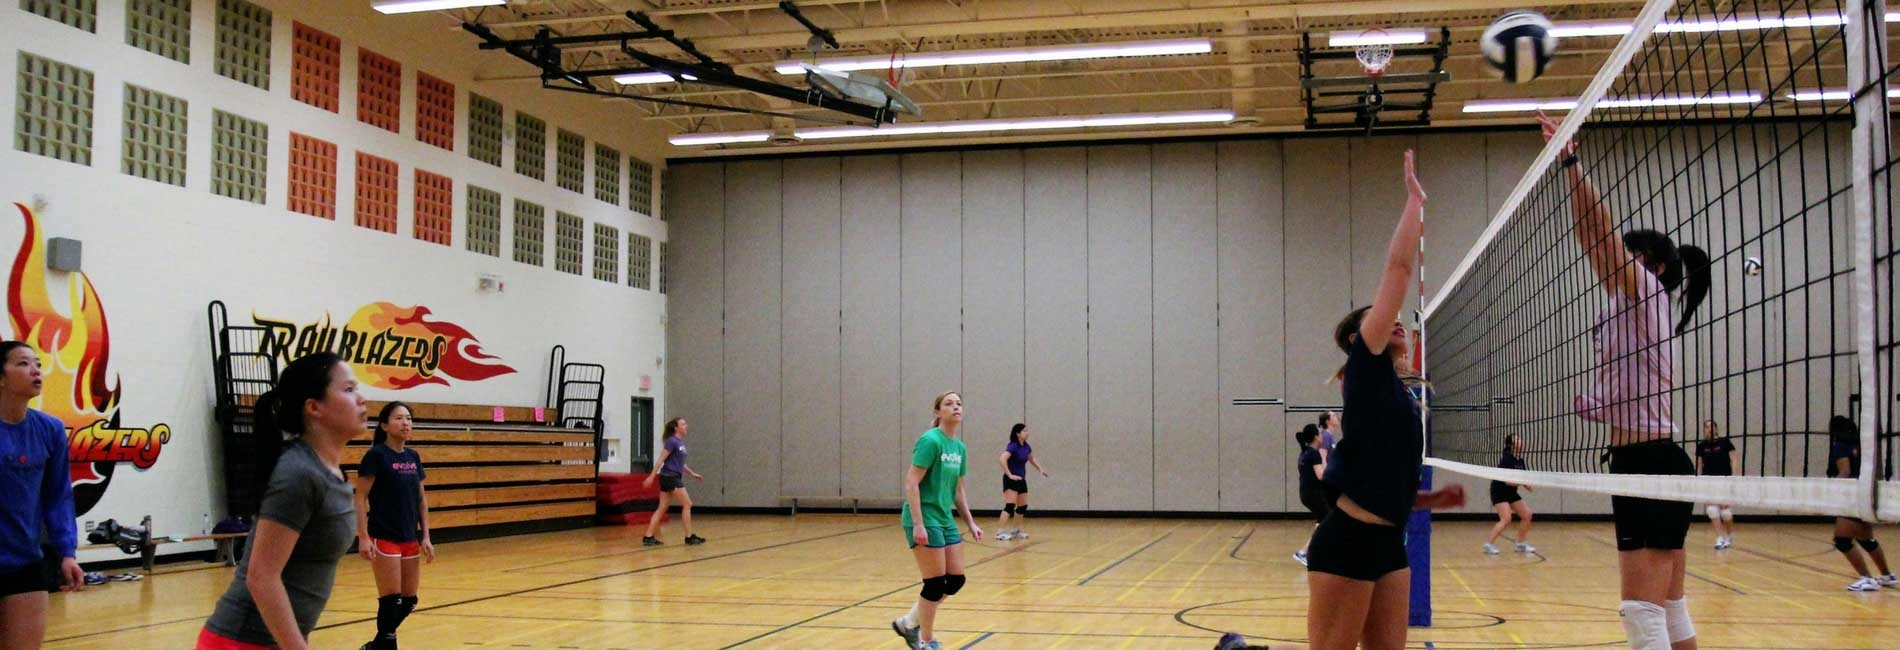 Standard swscd   volleyball  2   activity banner image  1900x650